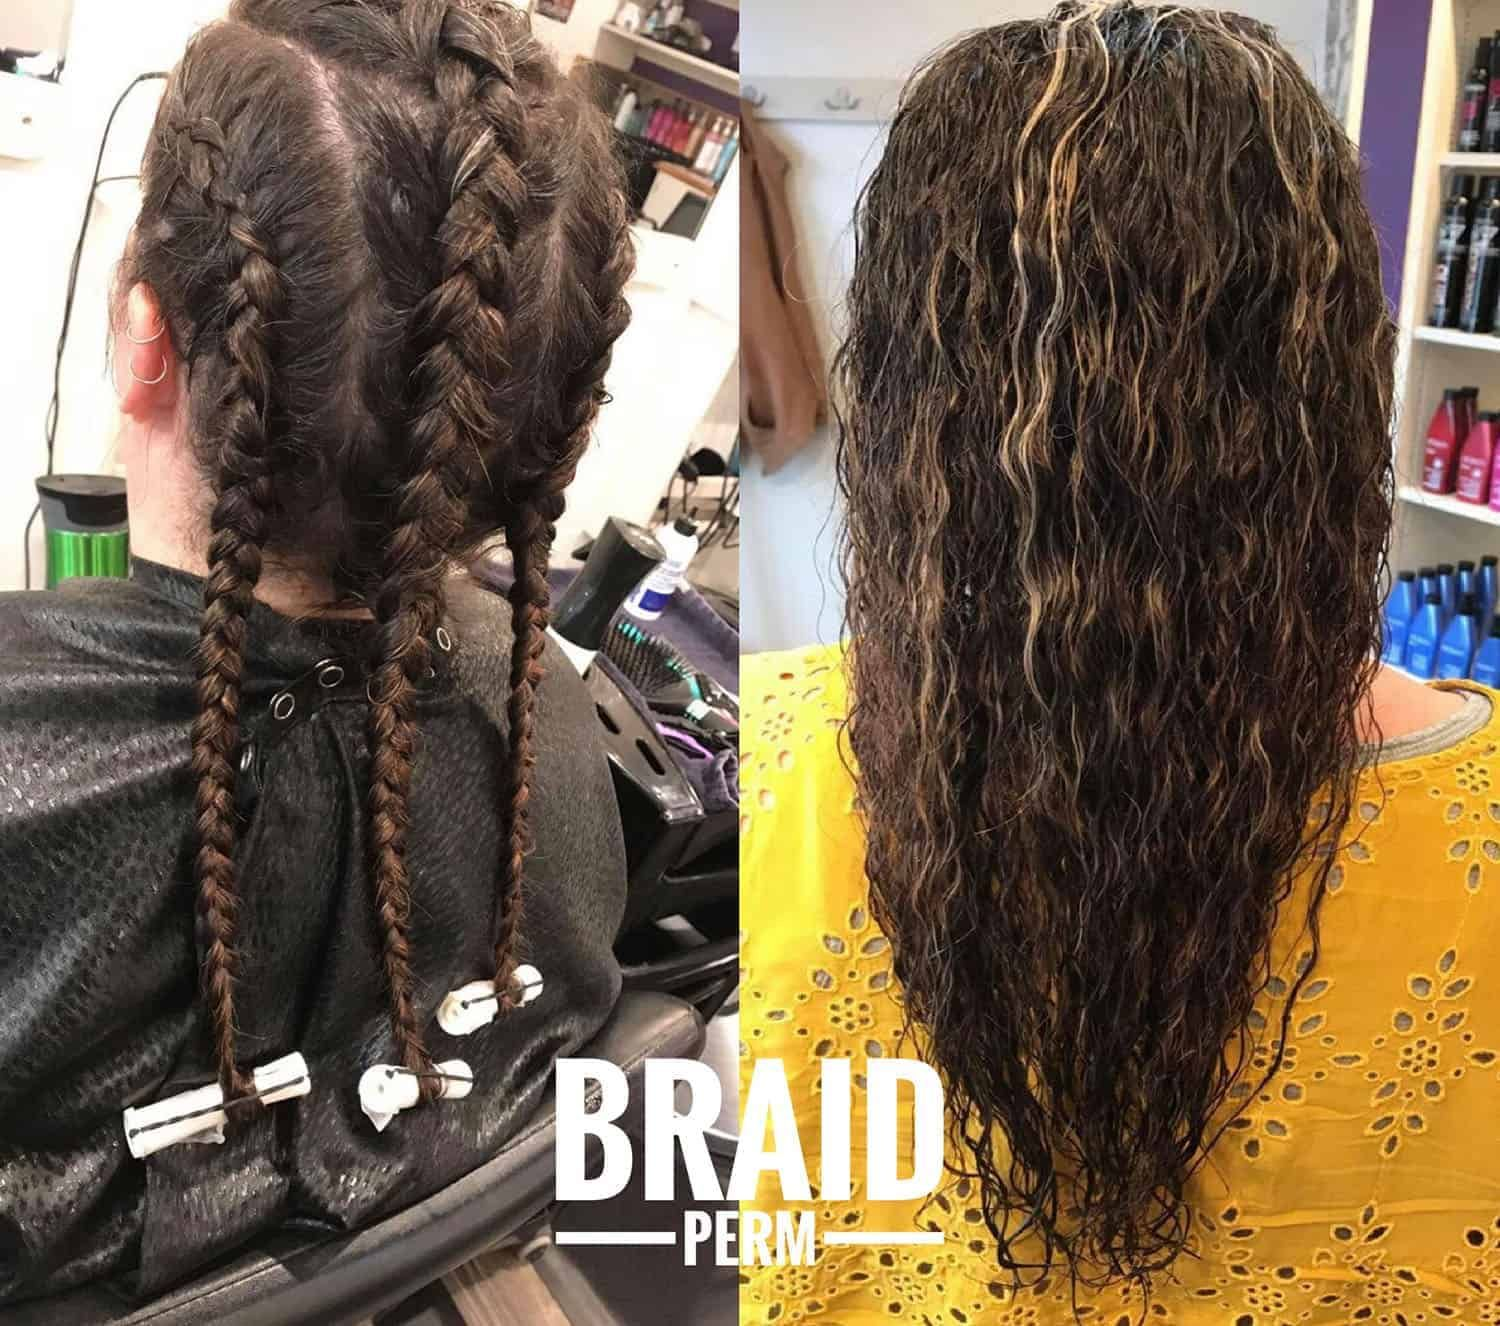 13 Modern Day Perms In 2019 With Before After Pictures Long Hair Perm Permed Hairstyles Types Of Perms